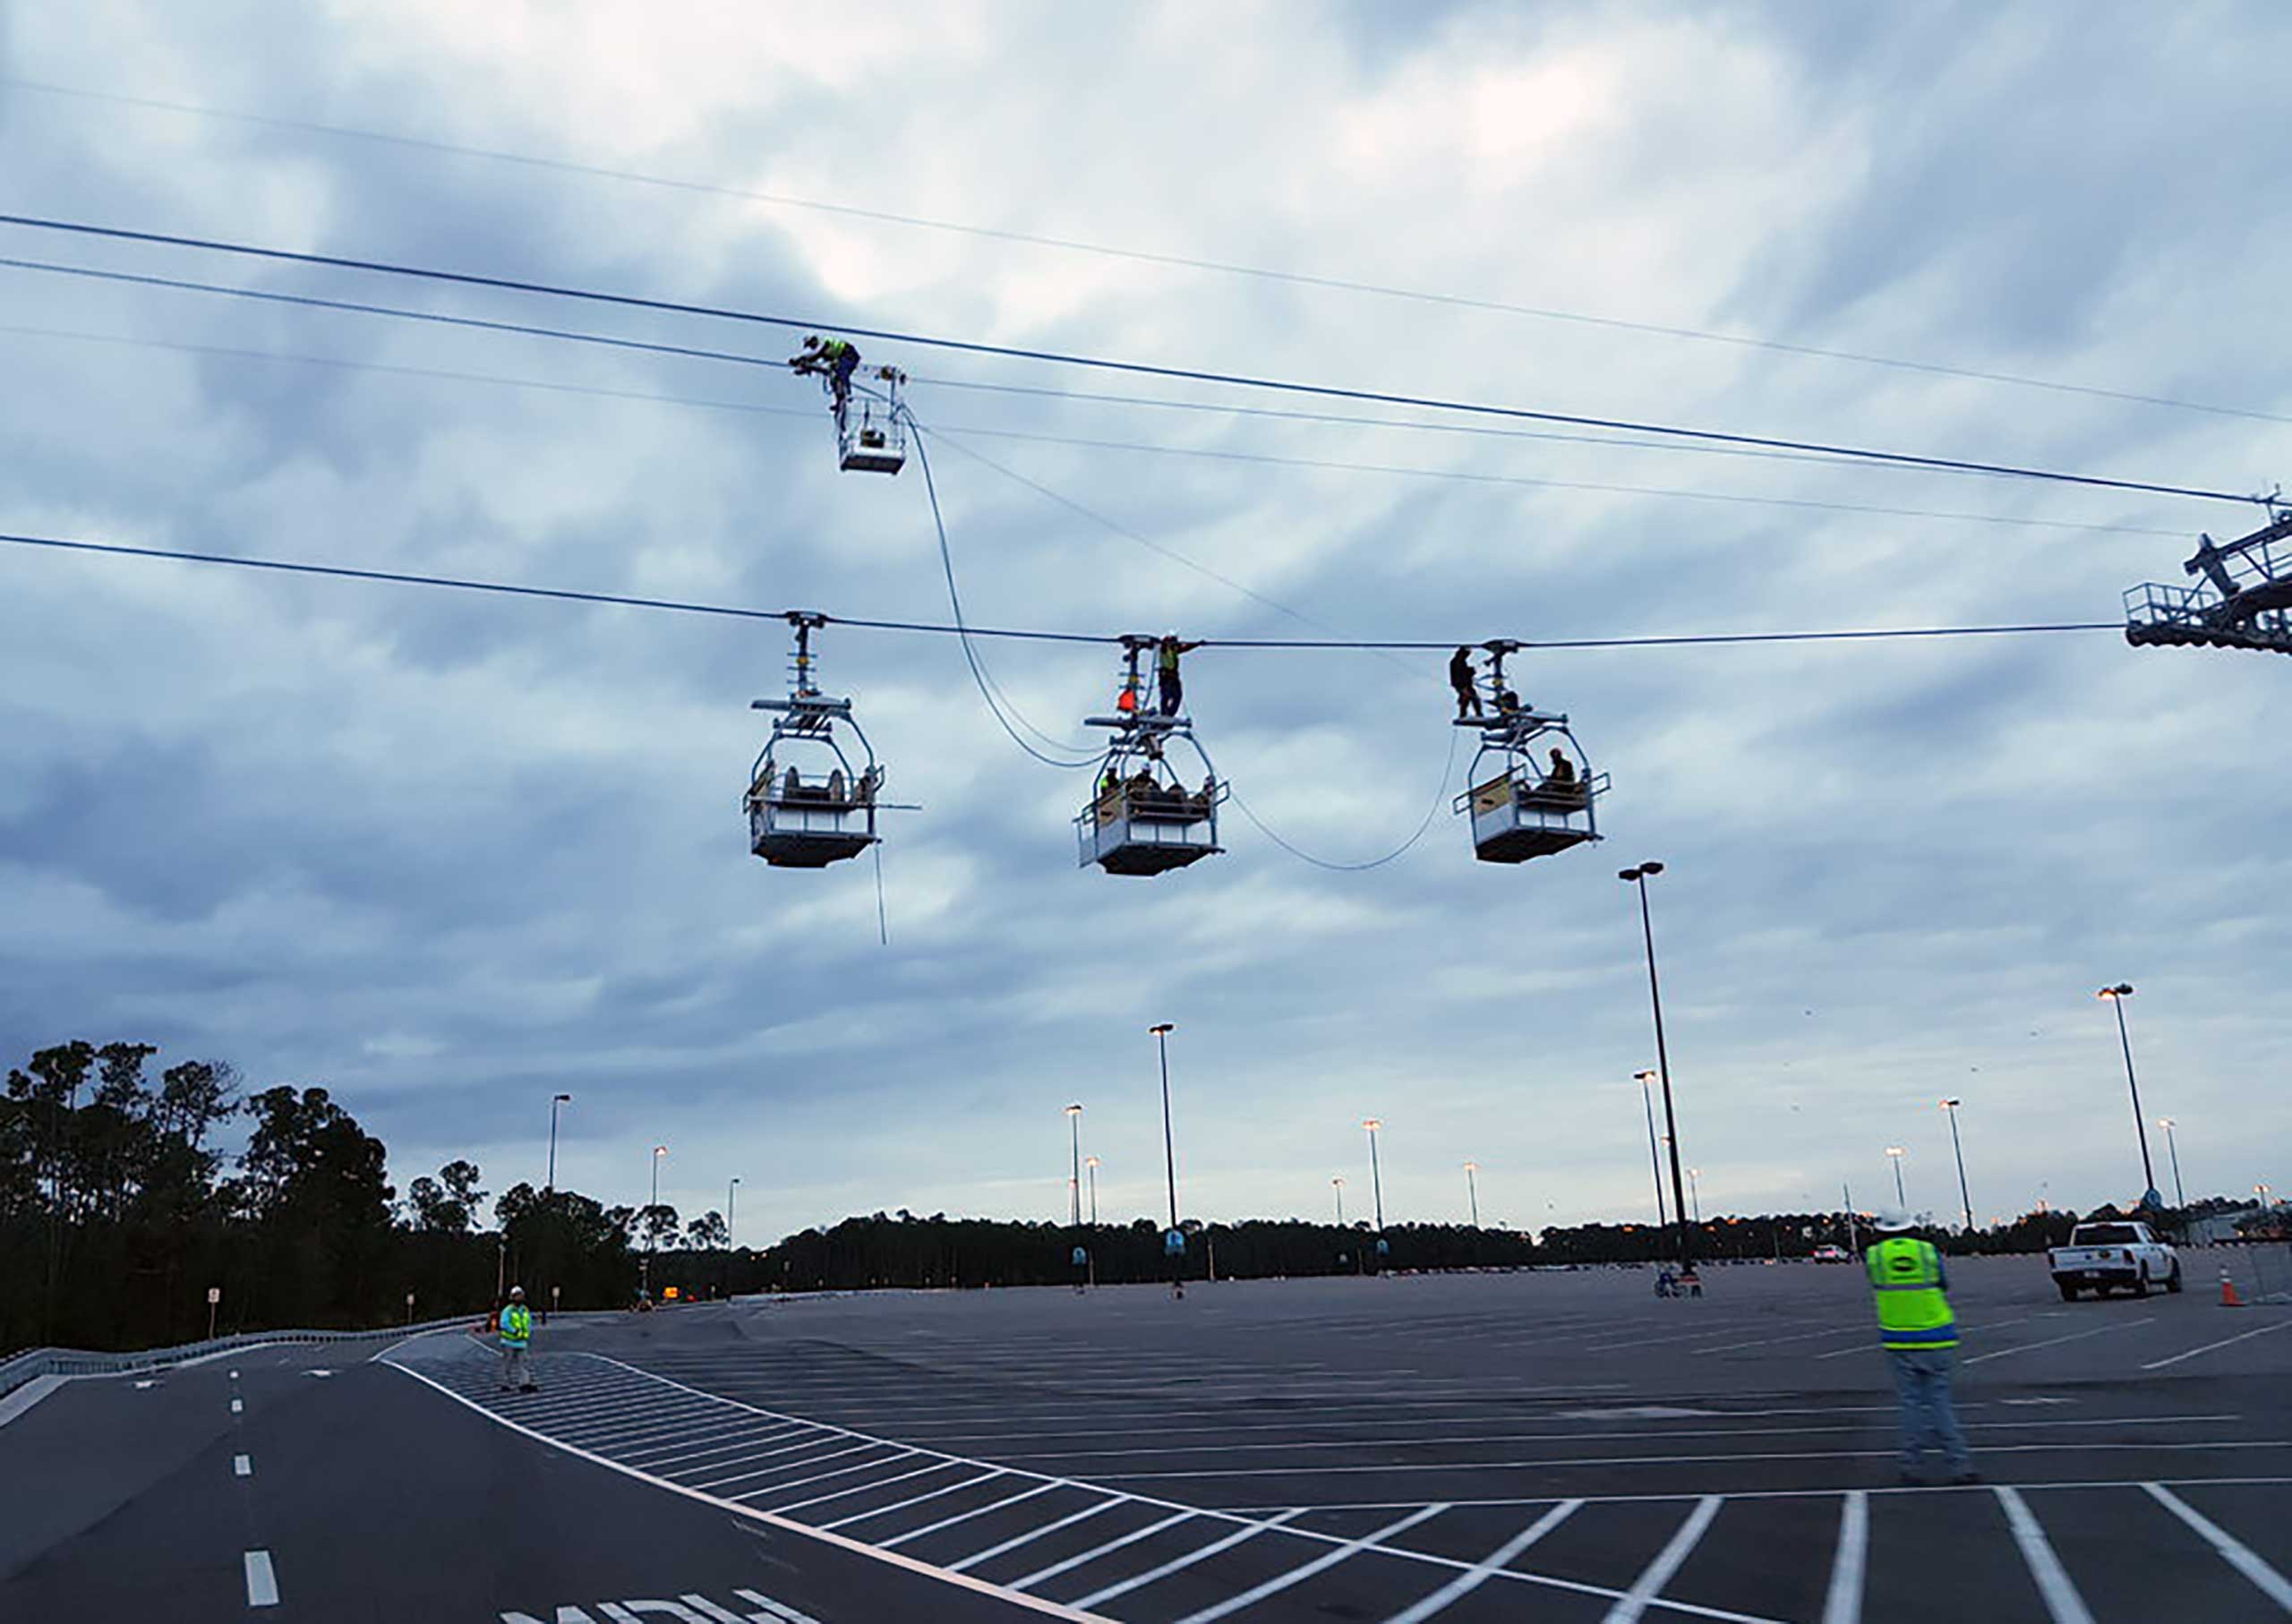 Maintenance gondolas on the Skyliner cables